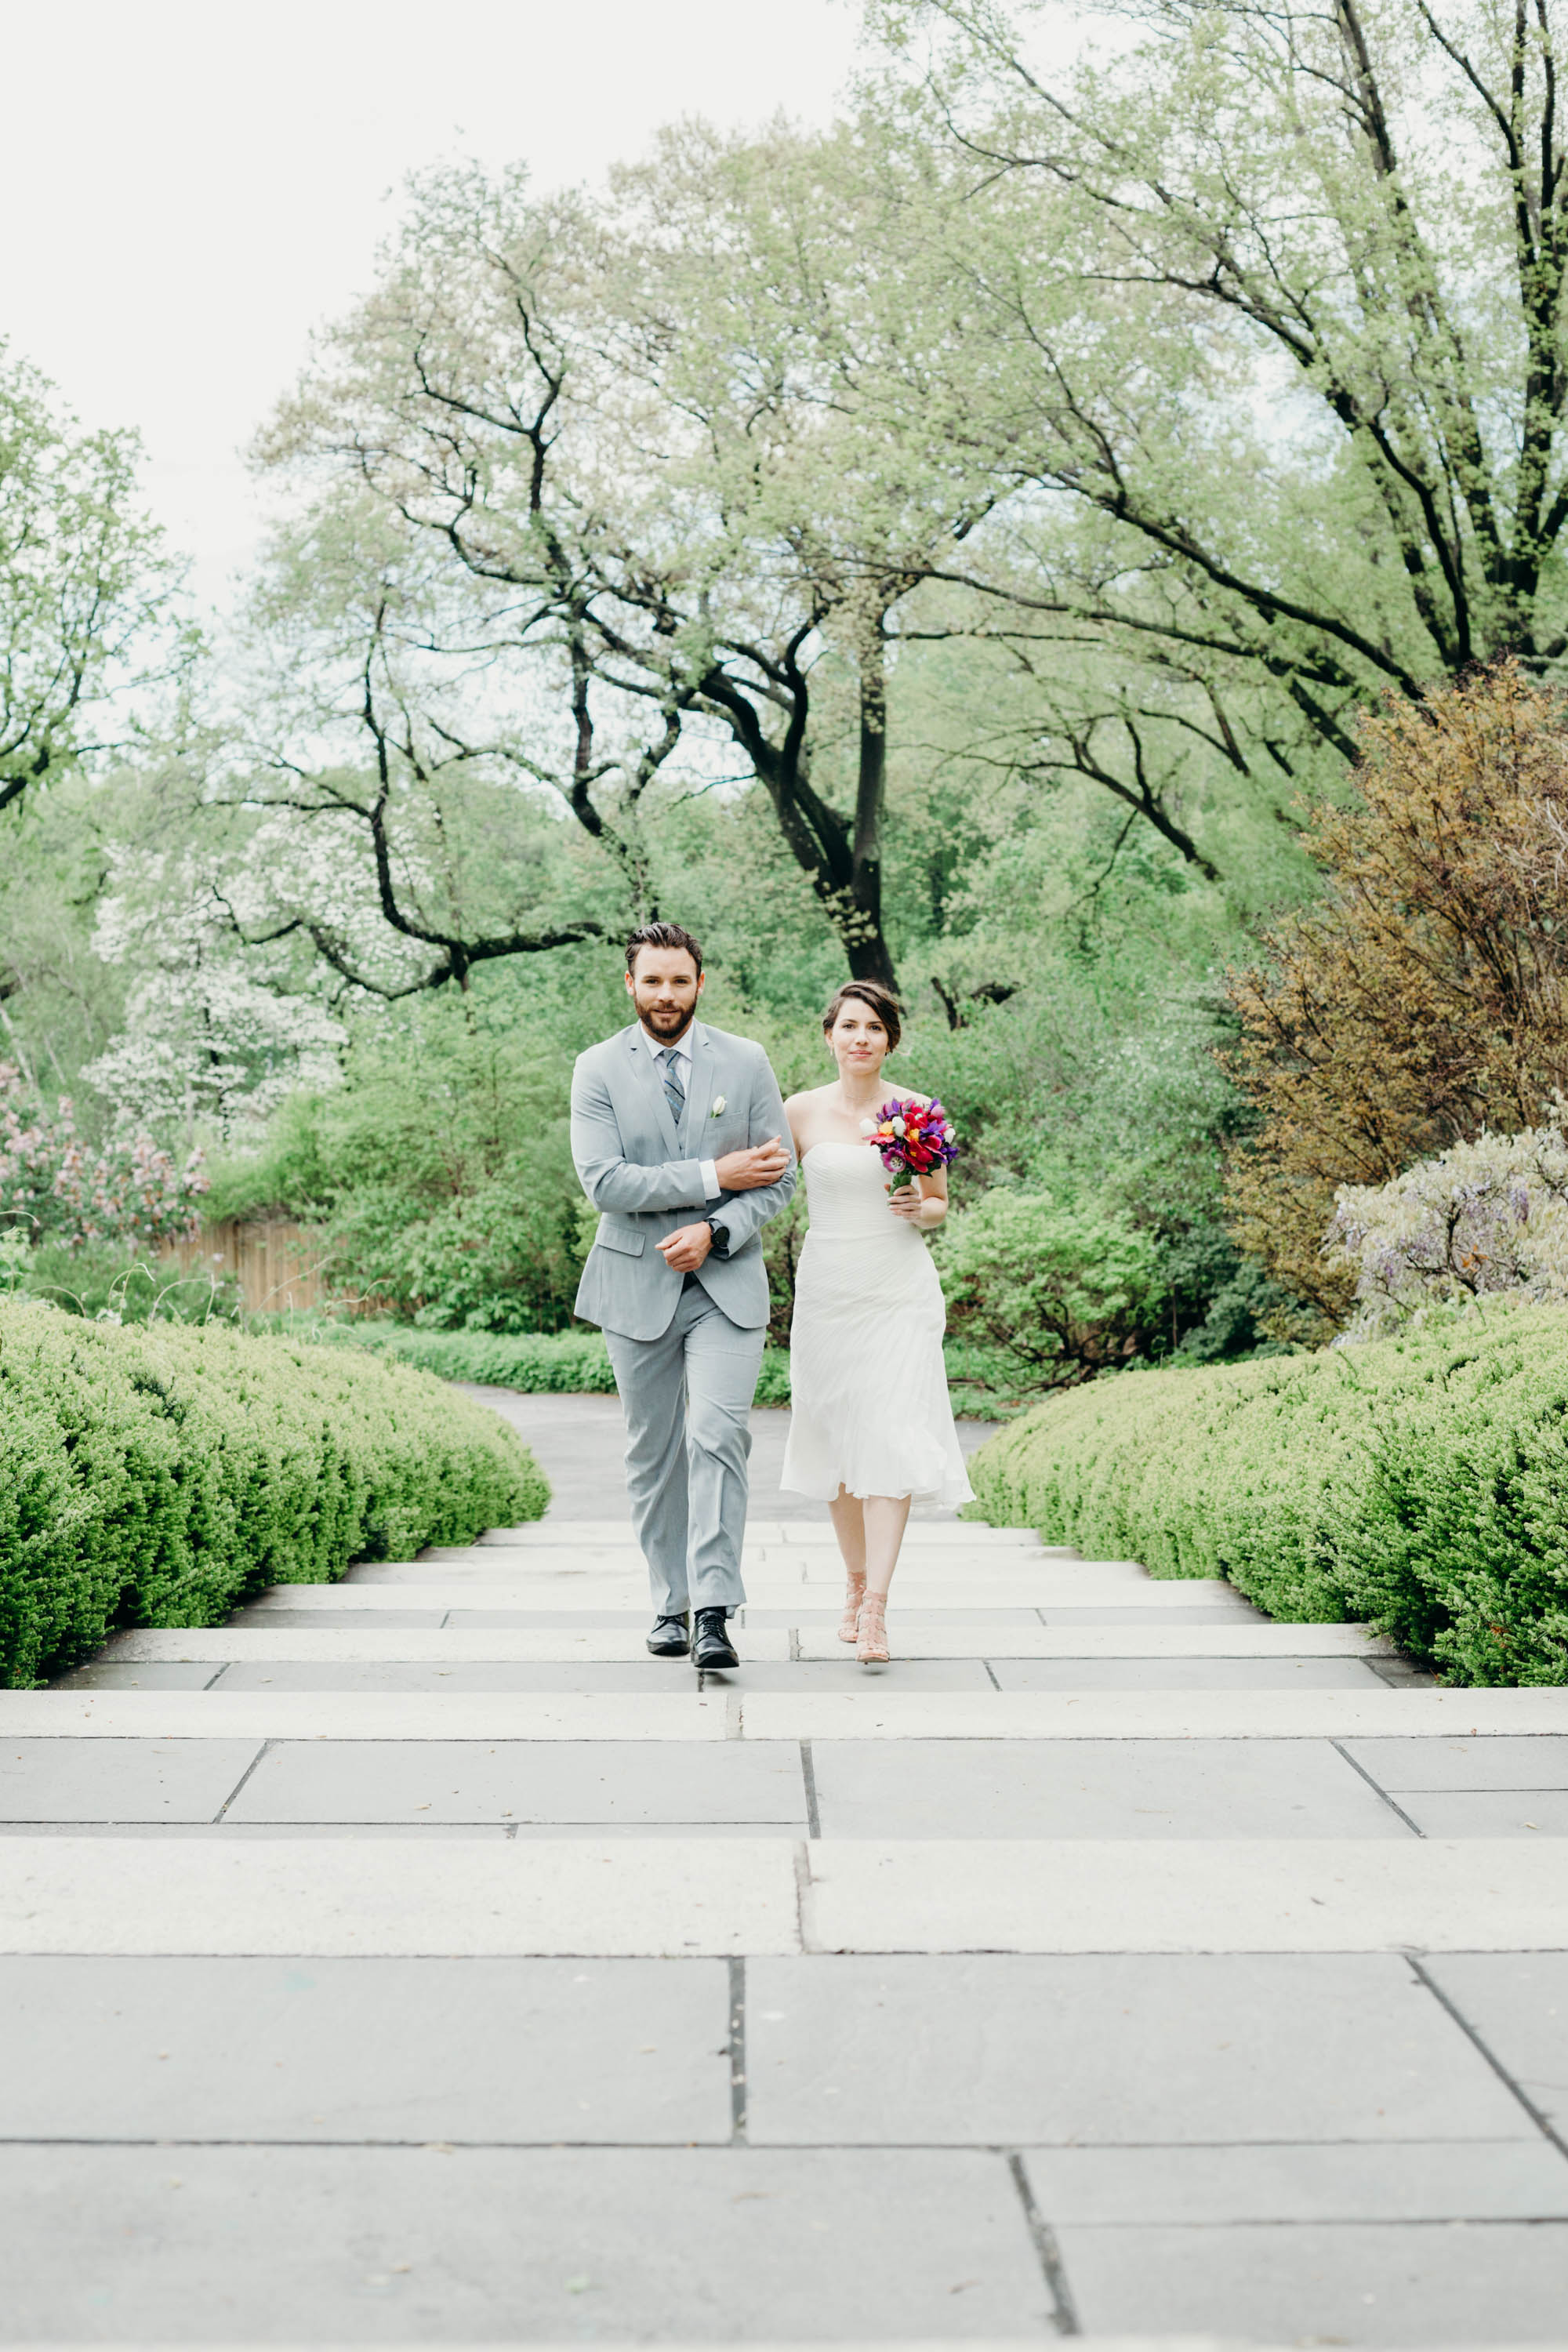 brooklyn-botanical-garden-elopement-elizabeth-tsung-photo-10.jpg